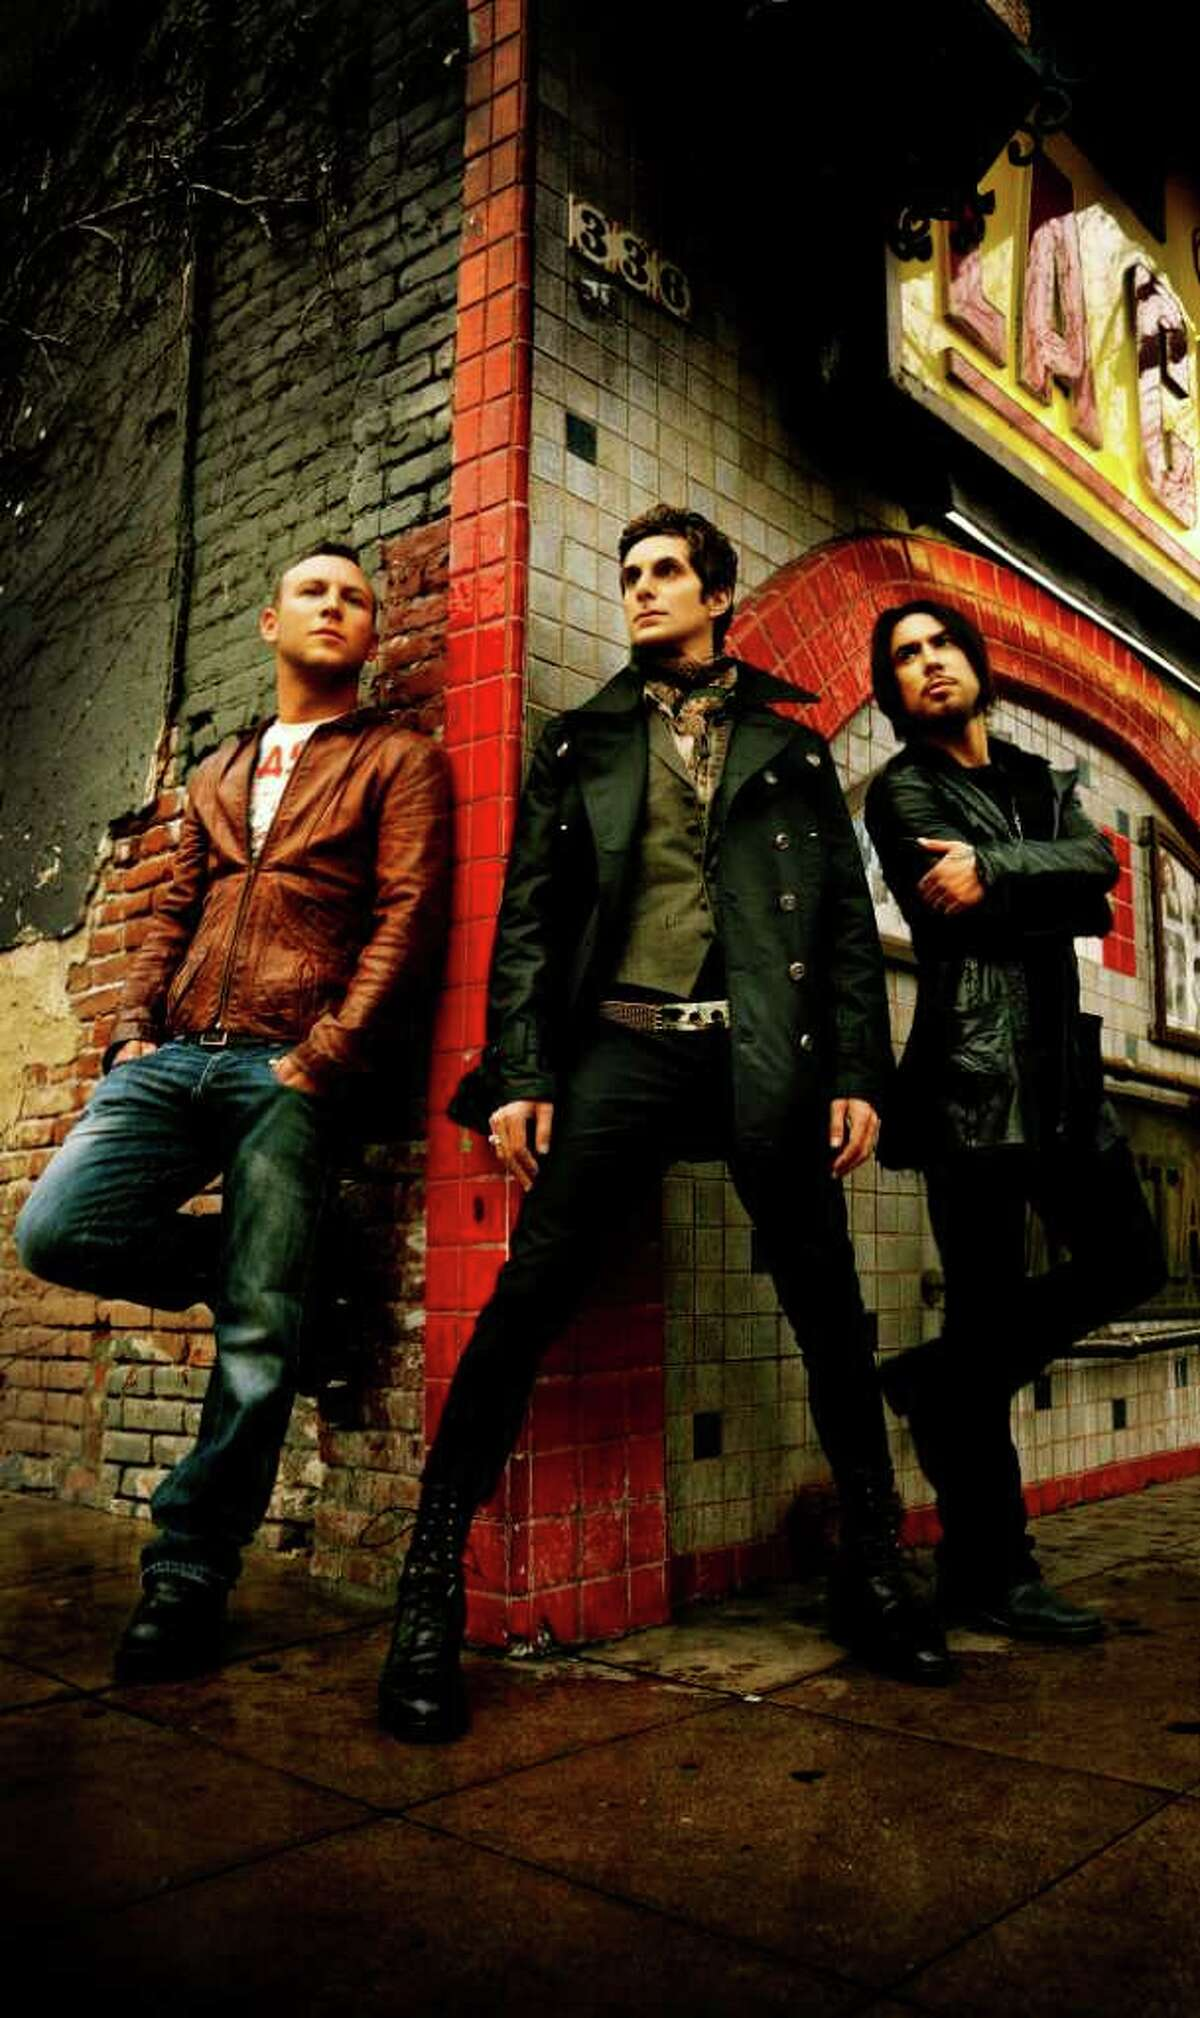 Jane's Addiction performs at the Gathering of the Vibes on Saturday, July 23.